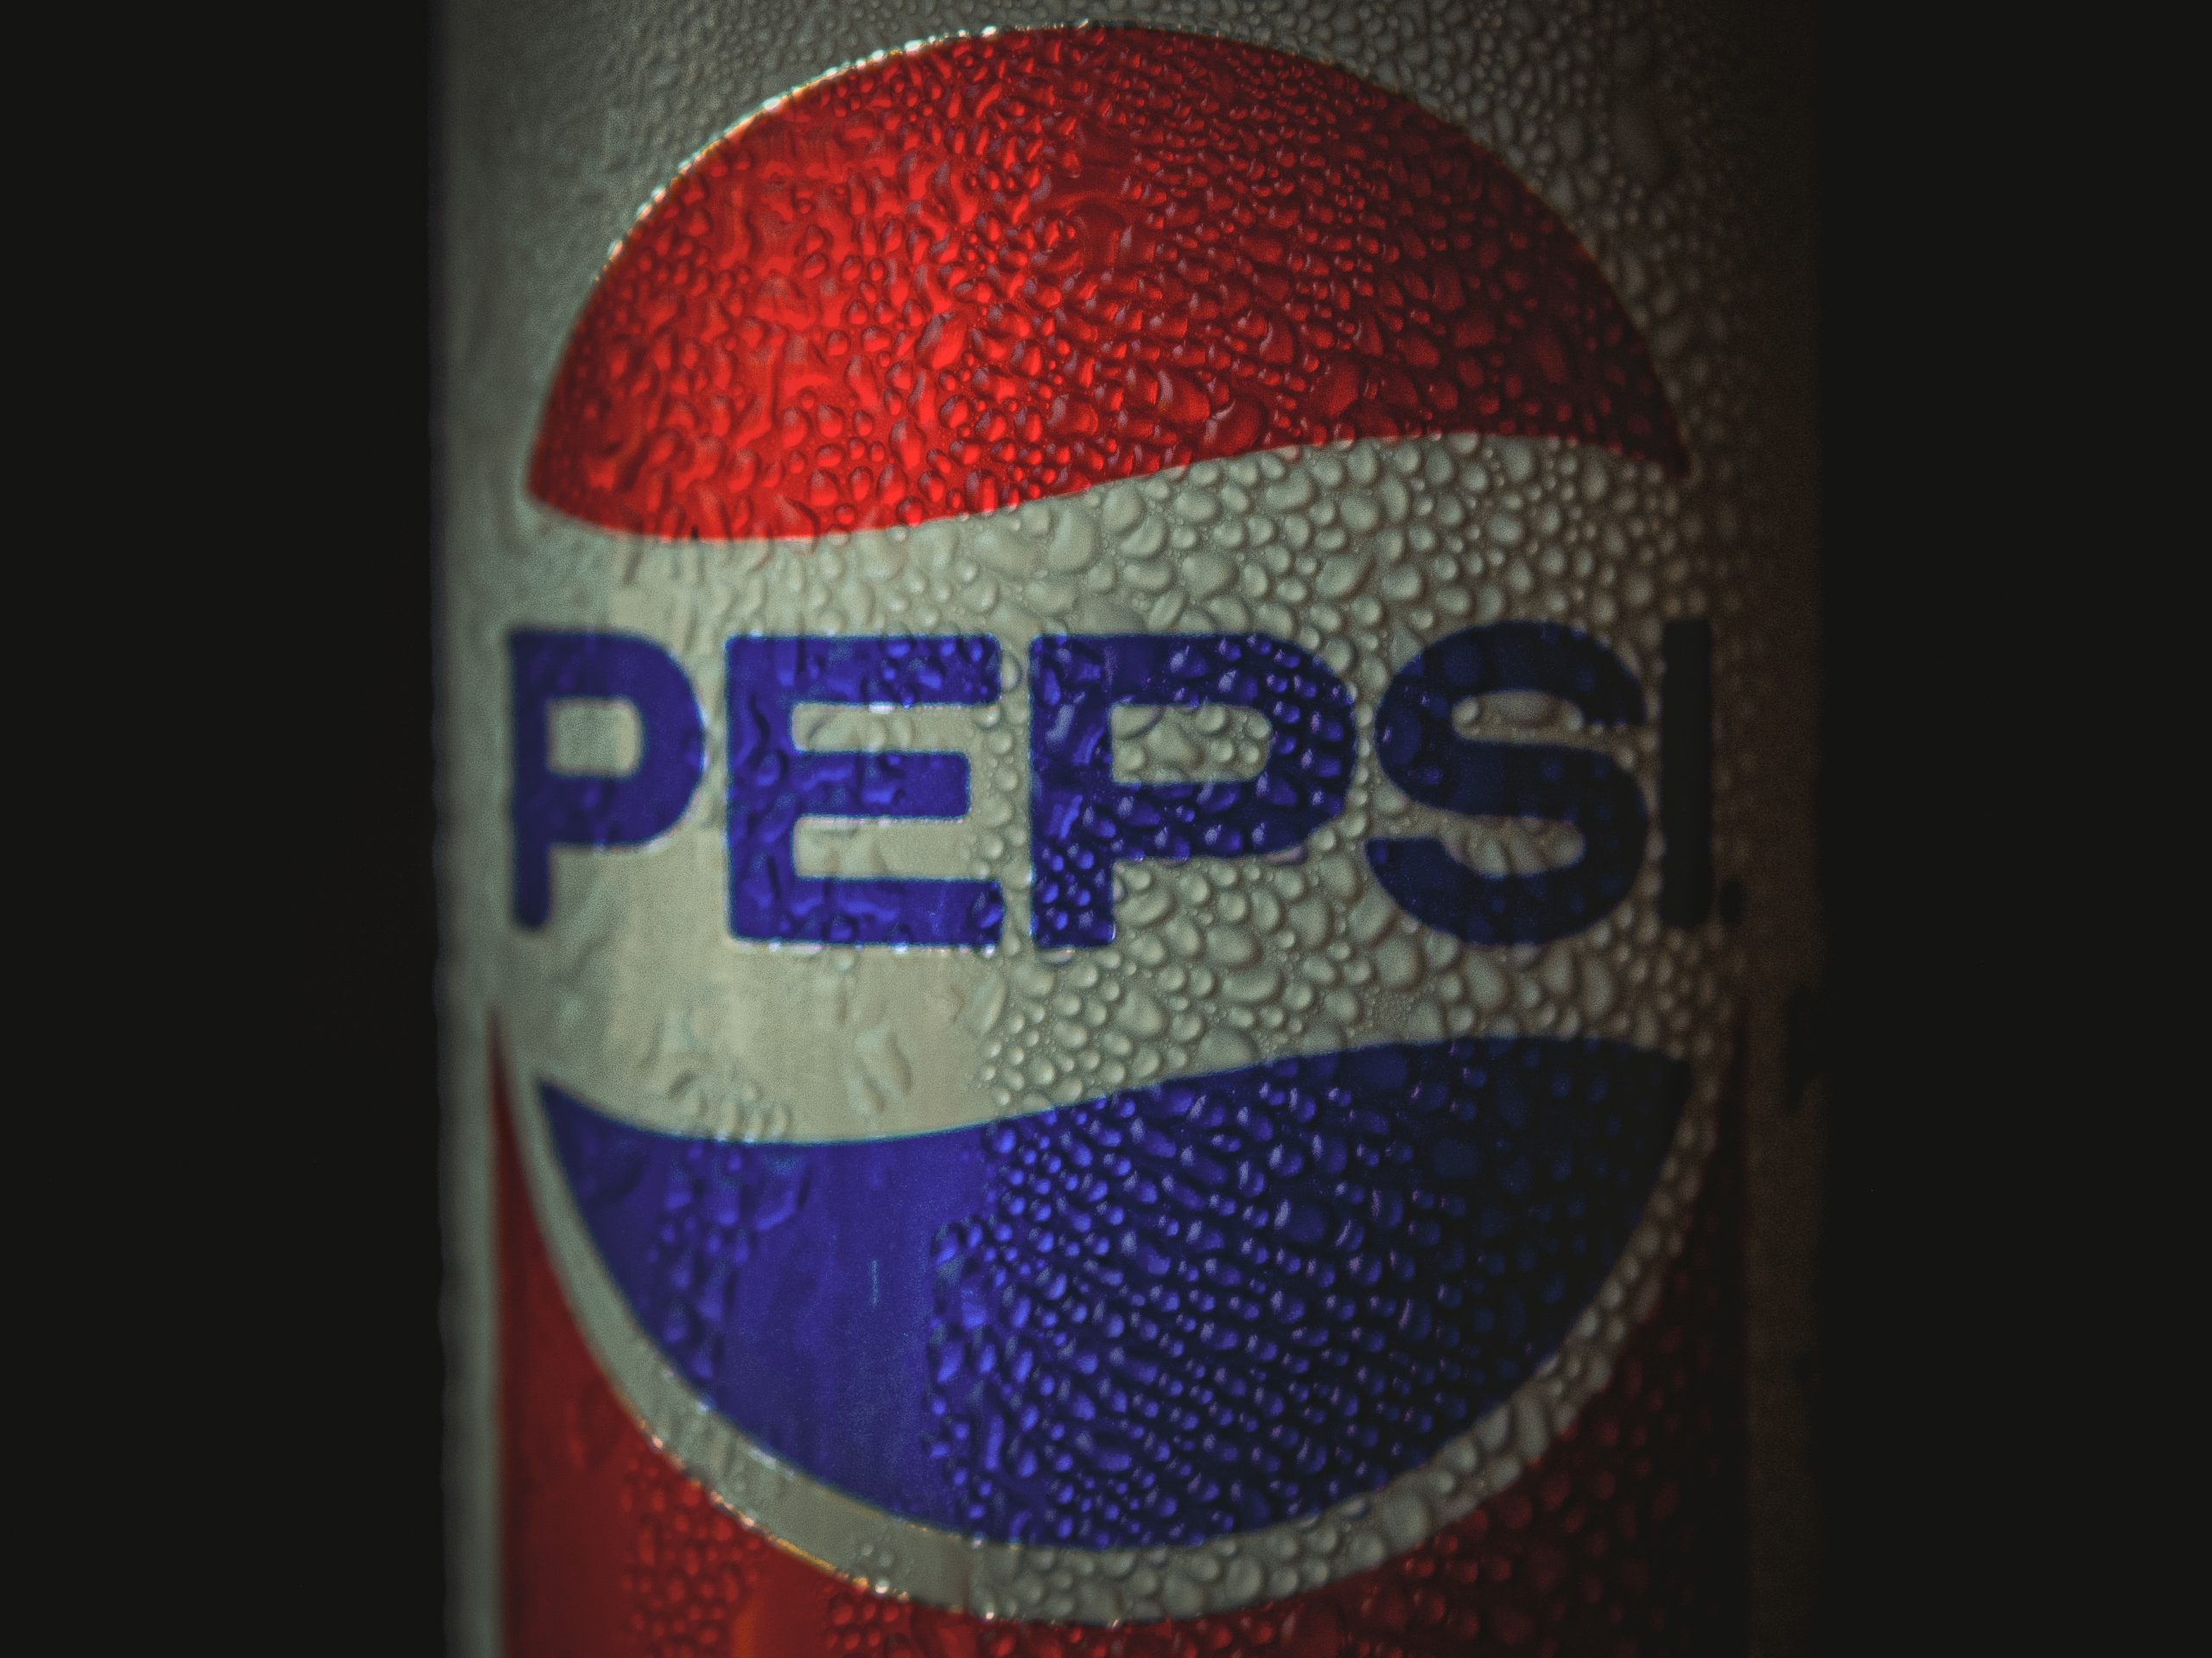 Moisture on a Pepsi can